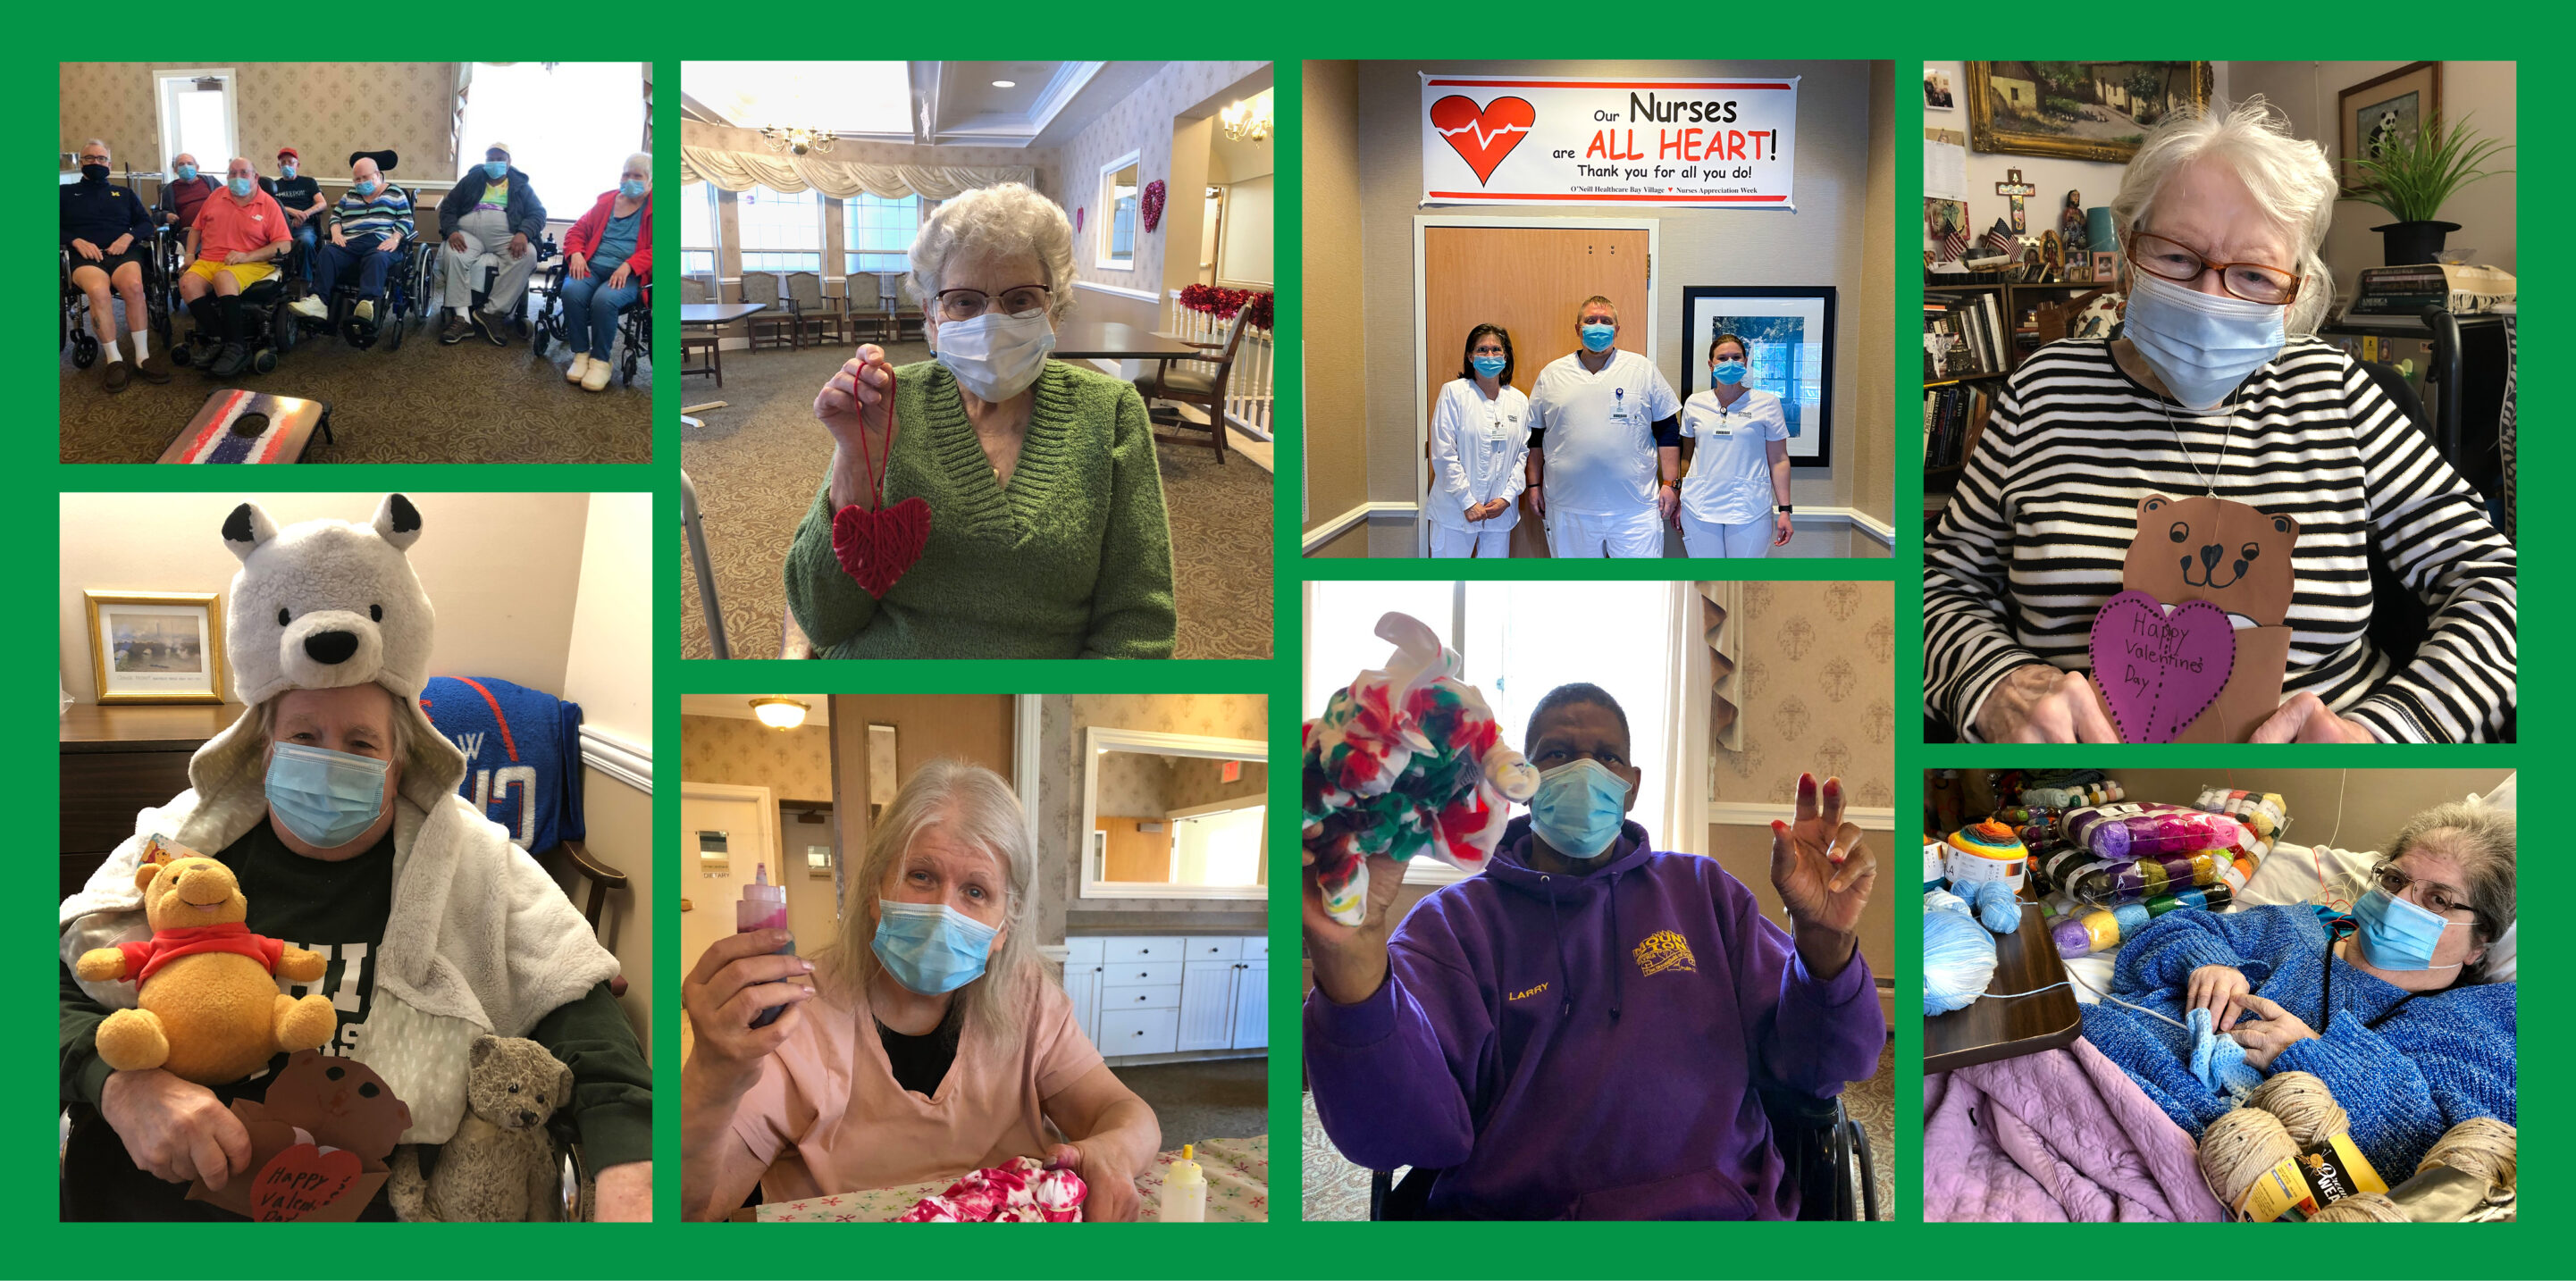 Collage of residents enjoying different activities at O'Neill Healthcare Bay Village